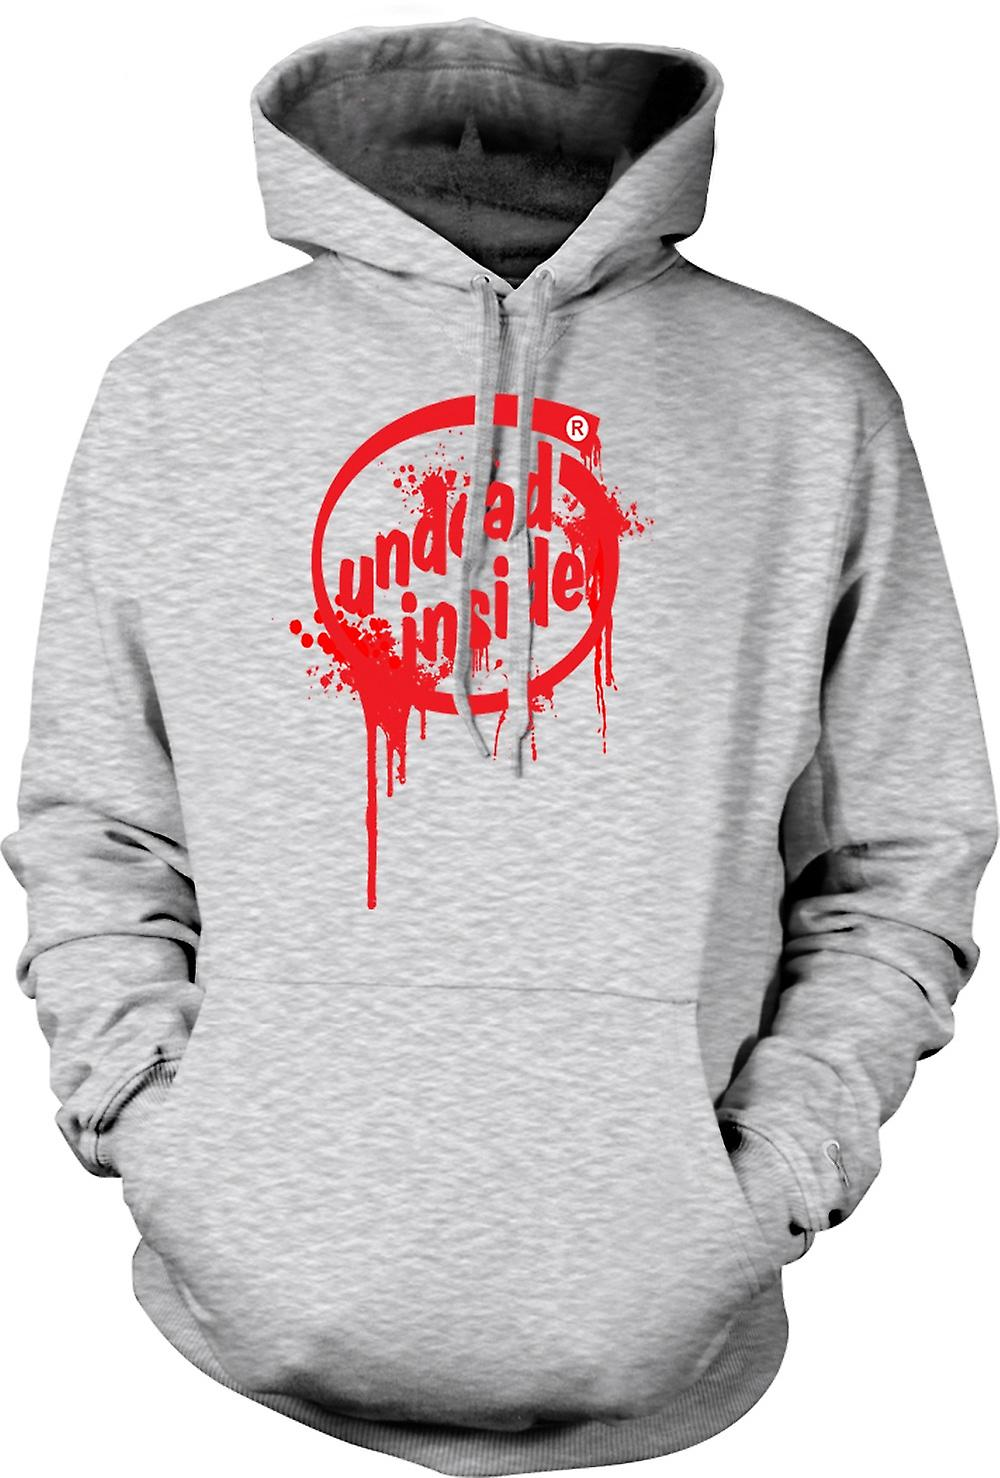 Mens Hoodie - Undead Inside - Zombie - Funny